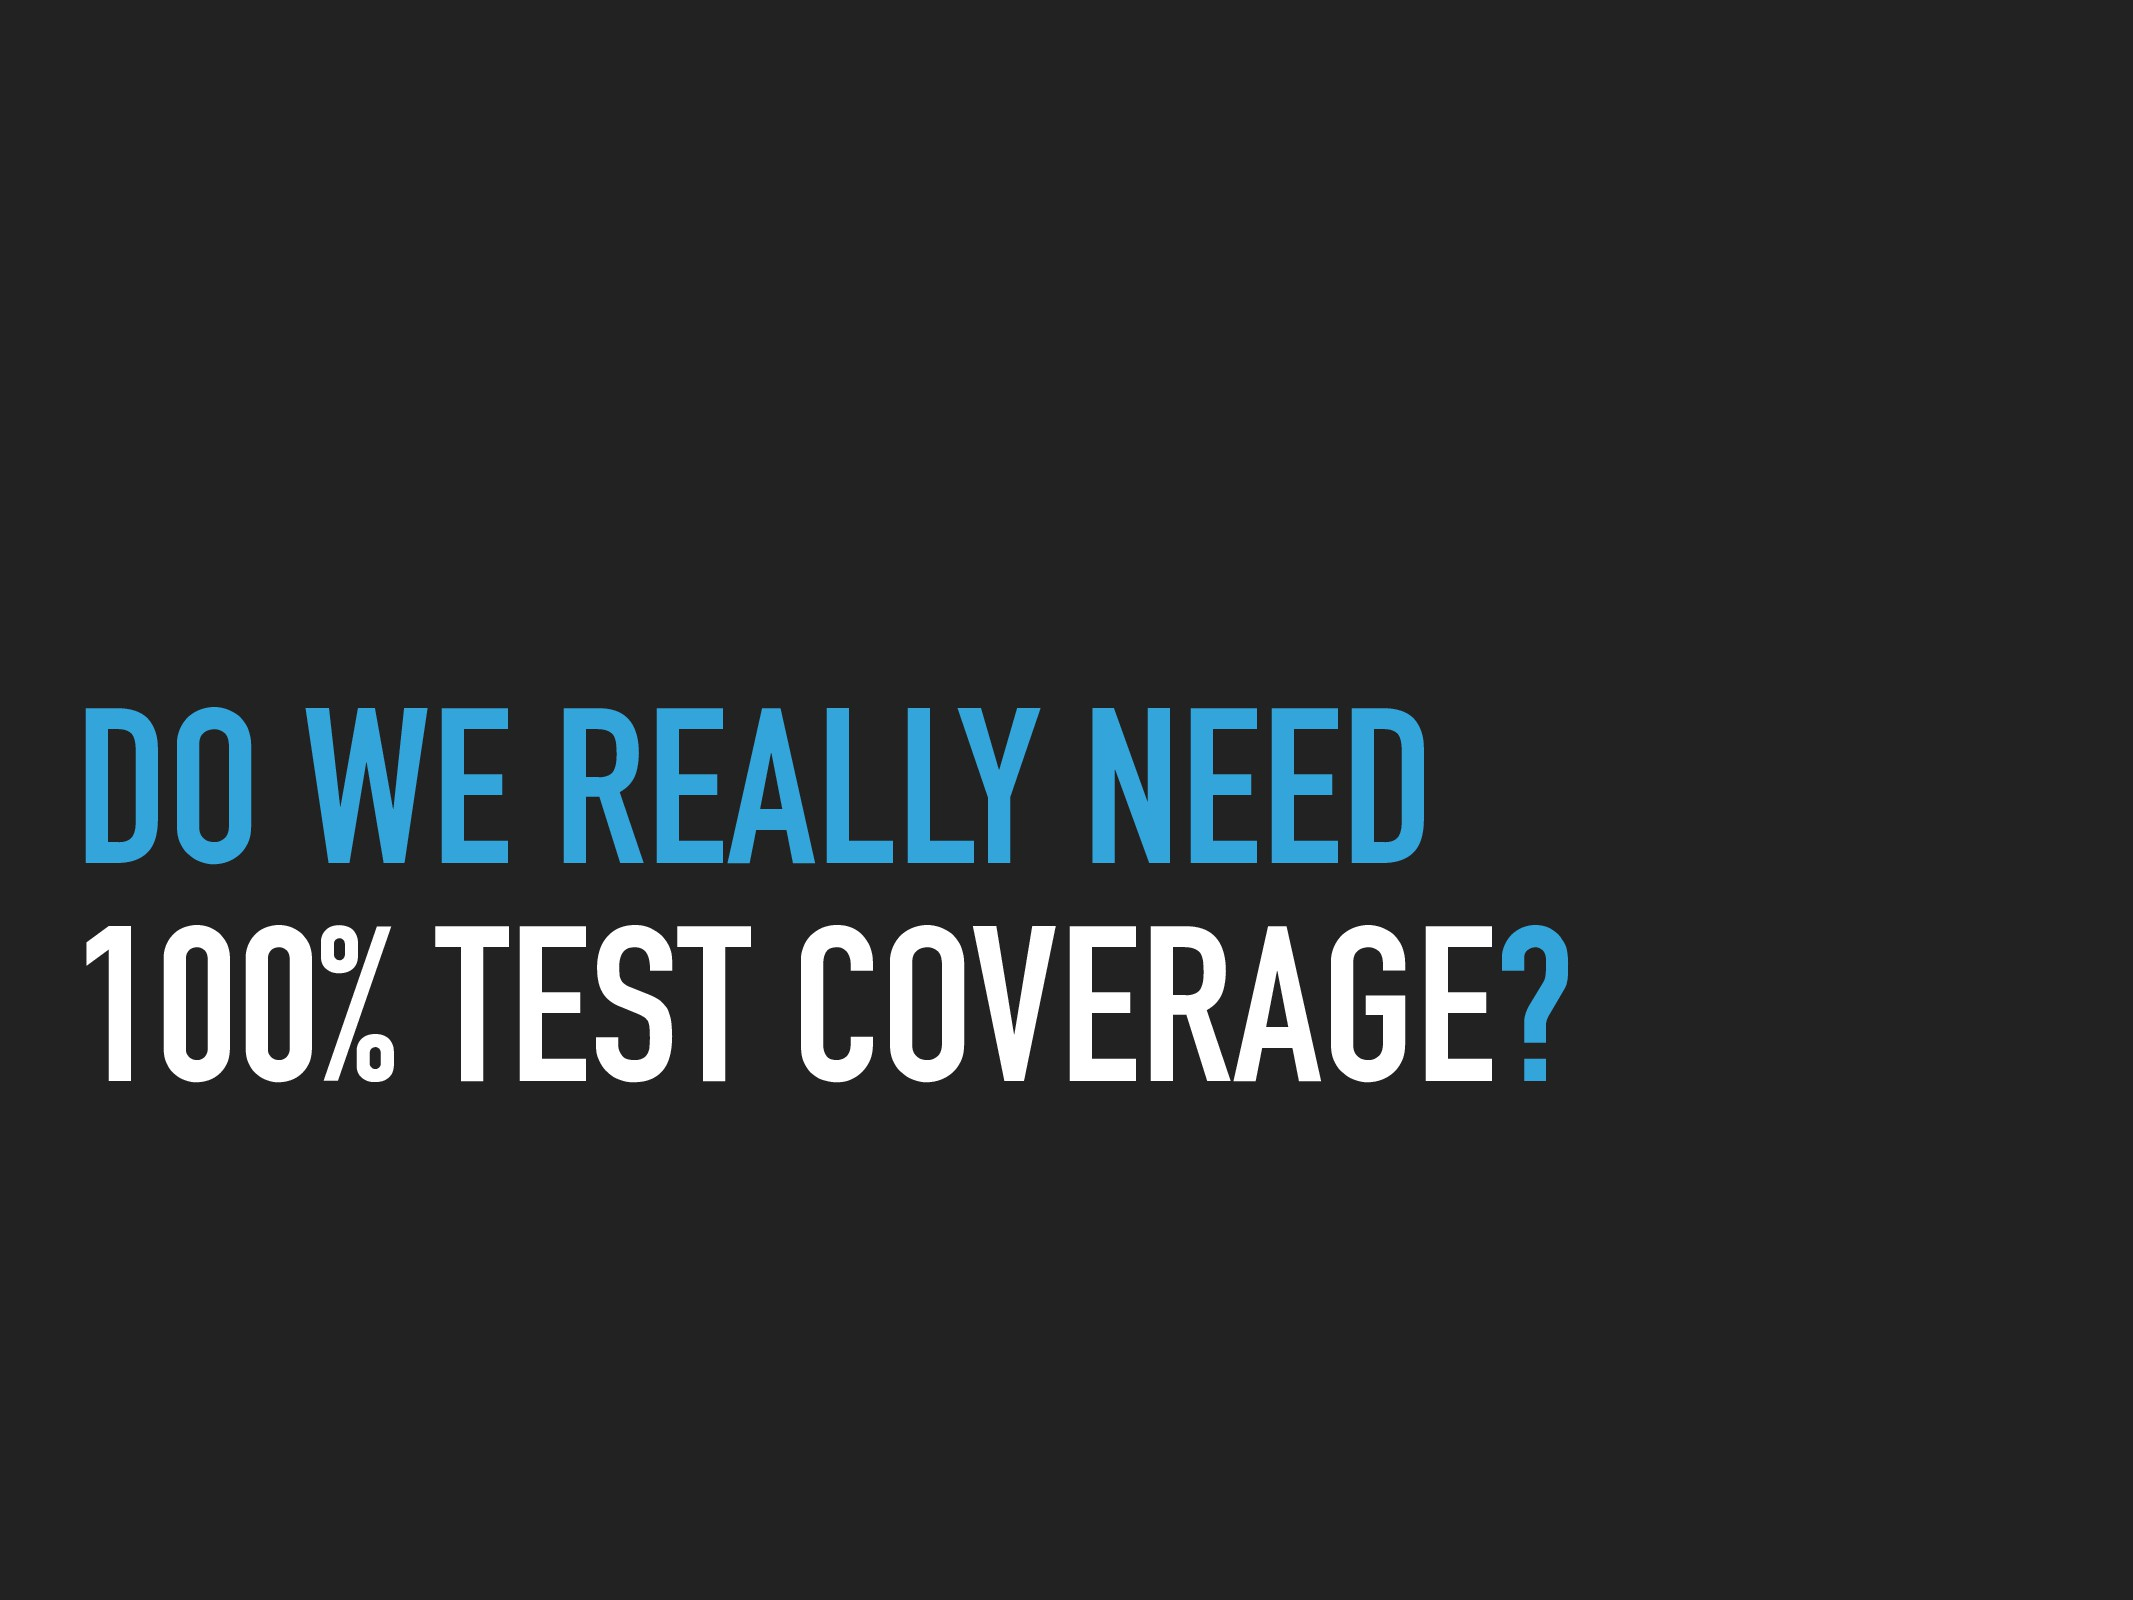 DO WE REALLY NEED 100% TEST COVERAGE?